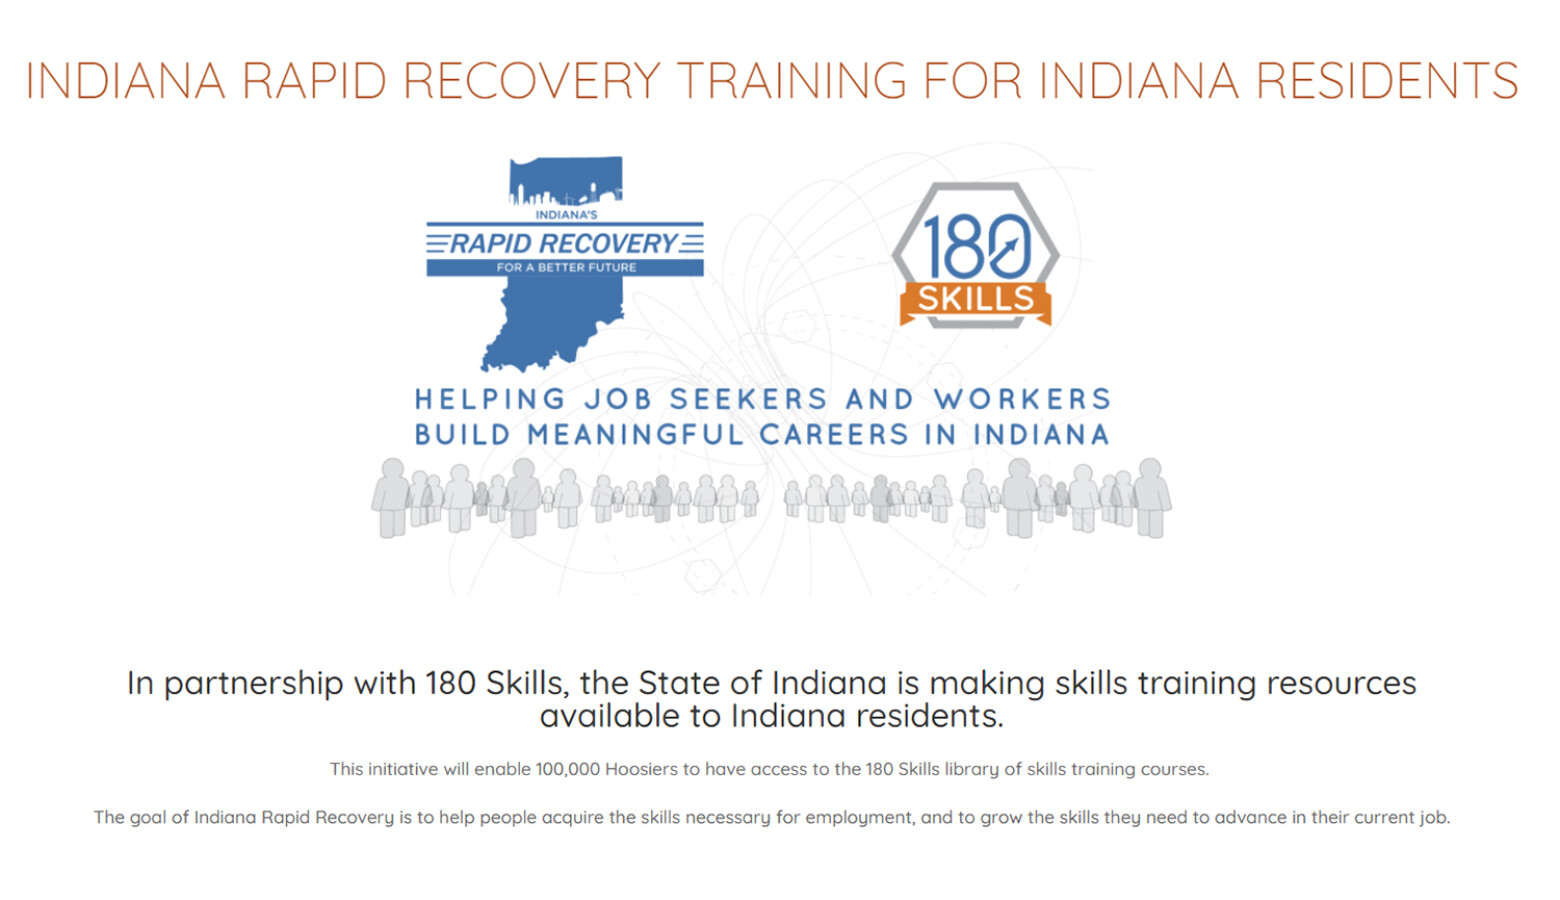 Indiana is making free job training available for up to 100,000 Hoosiers who had their work affected by the pandemic by Indianapolis-based company 180 Skills. (Screeshot 180skills.com/free-indiana-training)